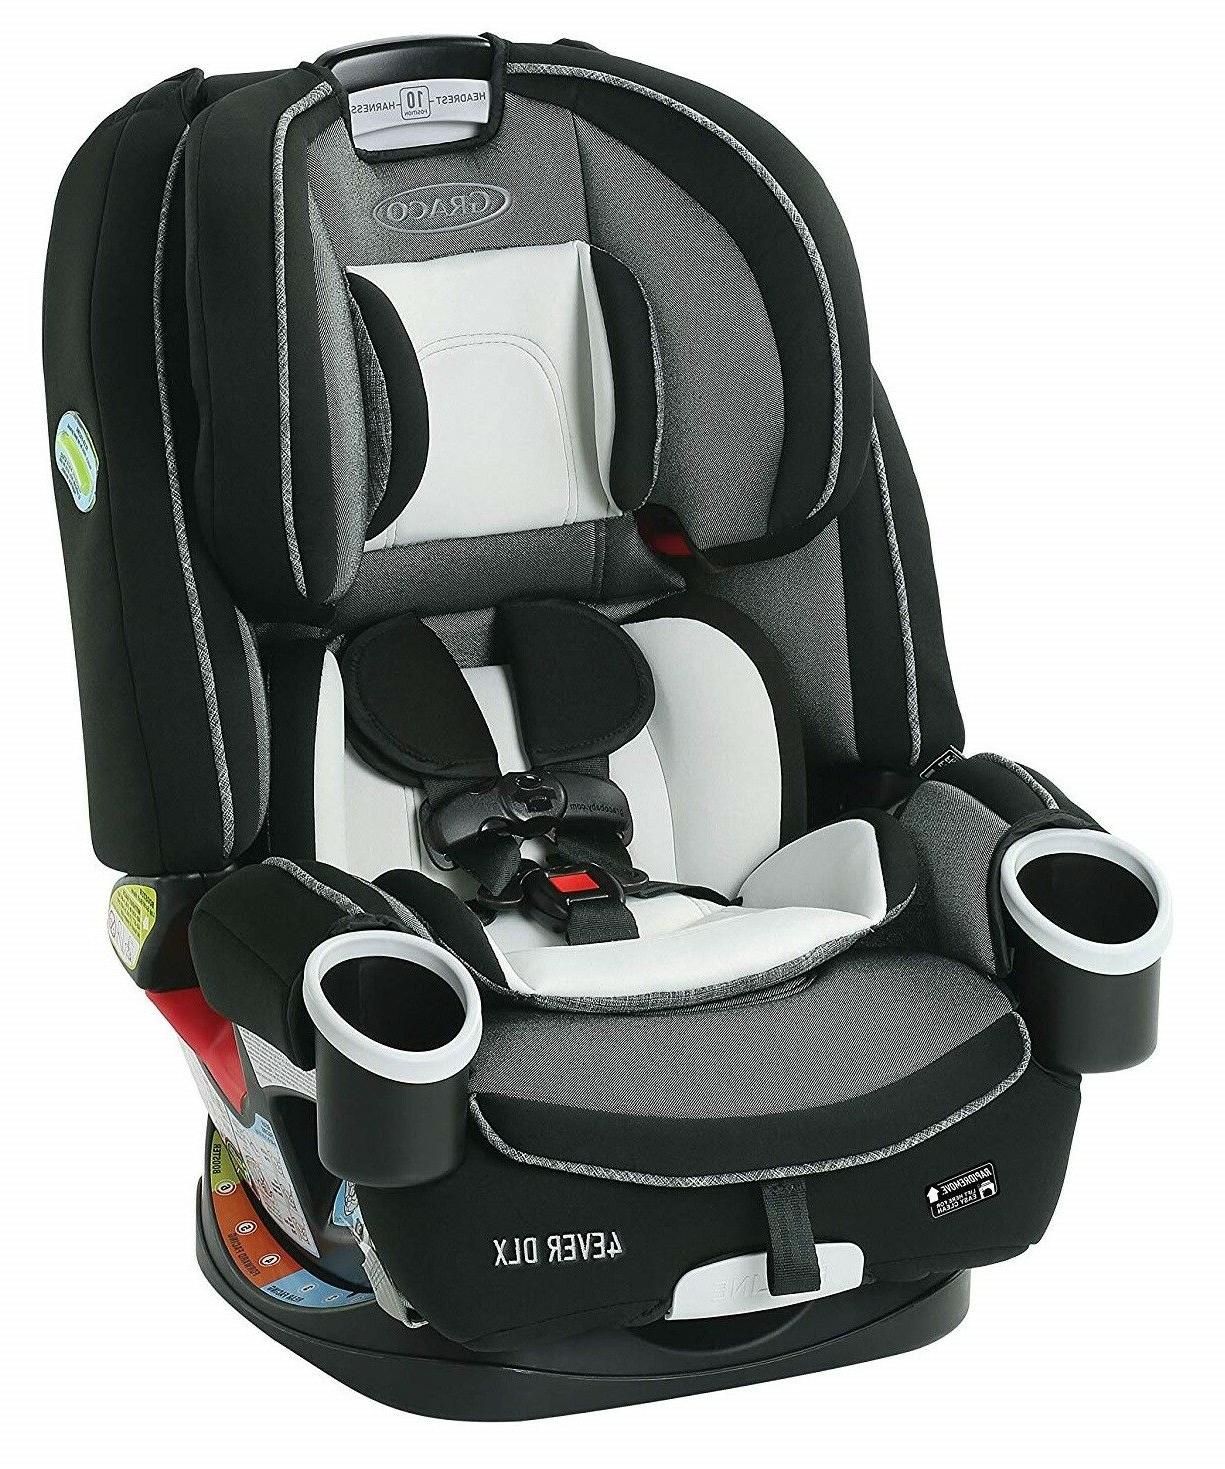 Graco Baby 4Ever DLX 4-in-1 Car Seat Infant Child Safety Fai